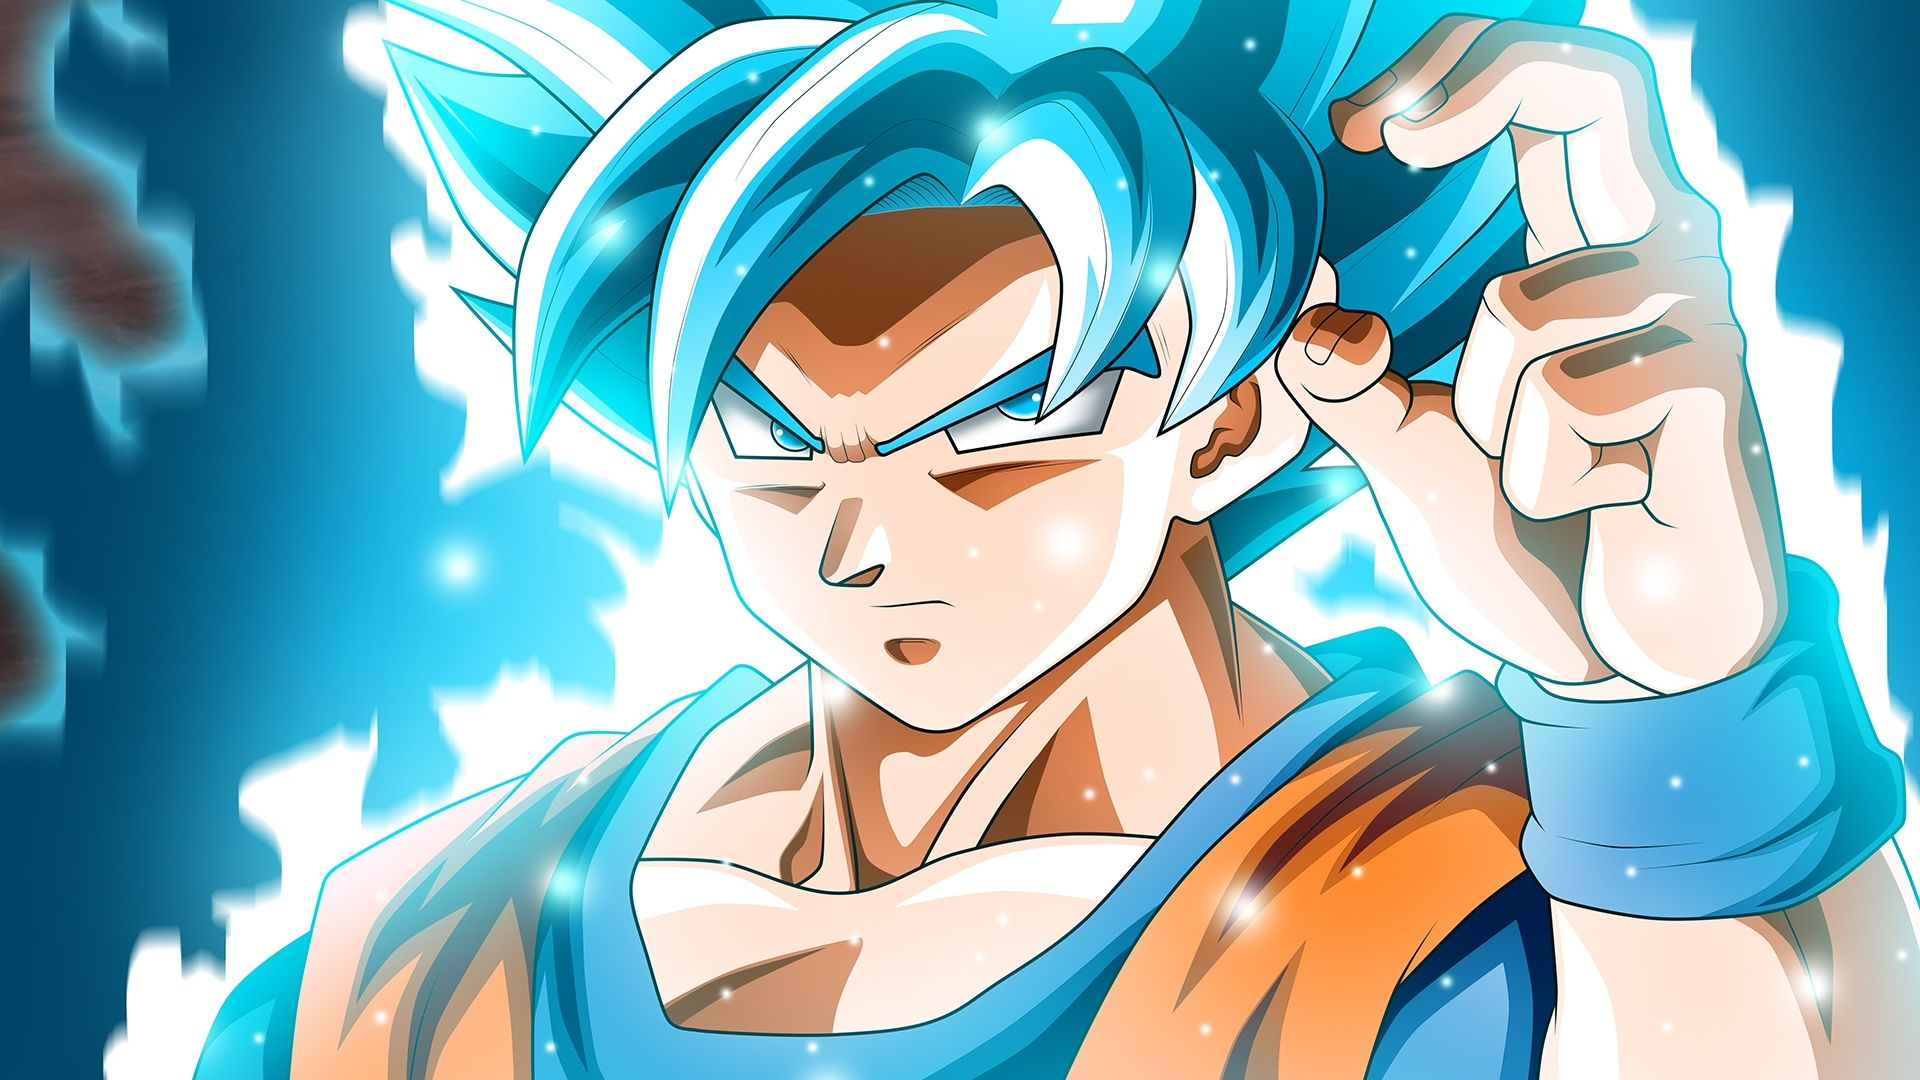 Son Goku Super Saiyan Blue Wallpapers Phone For Wallpaper Idea On Flowerswallpaper Info If You In 2020 Goku Super Saiyan Blue Super Saiyan Blue Goku Super Saiyan God